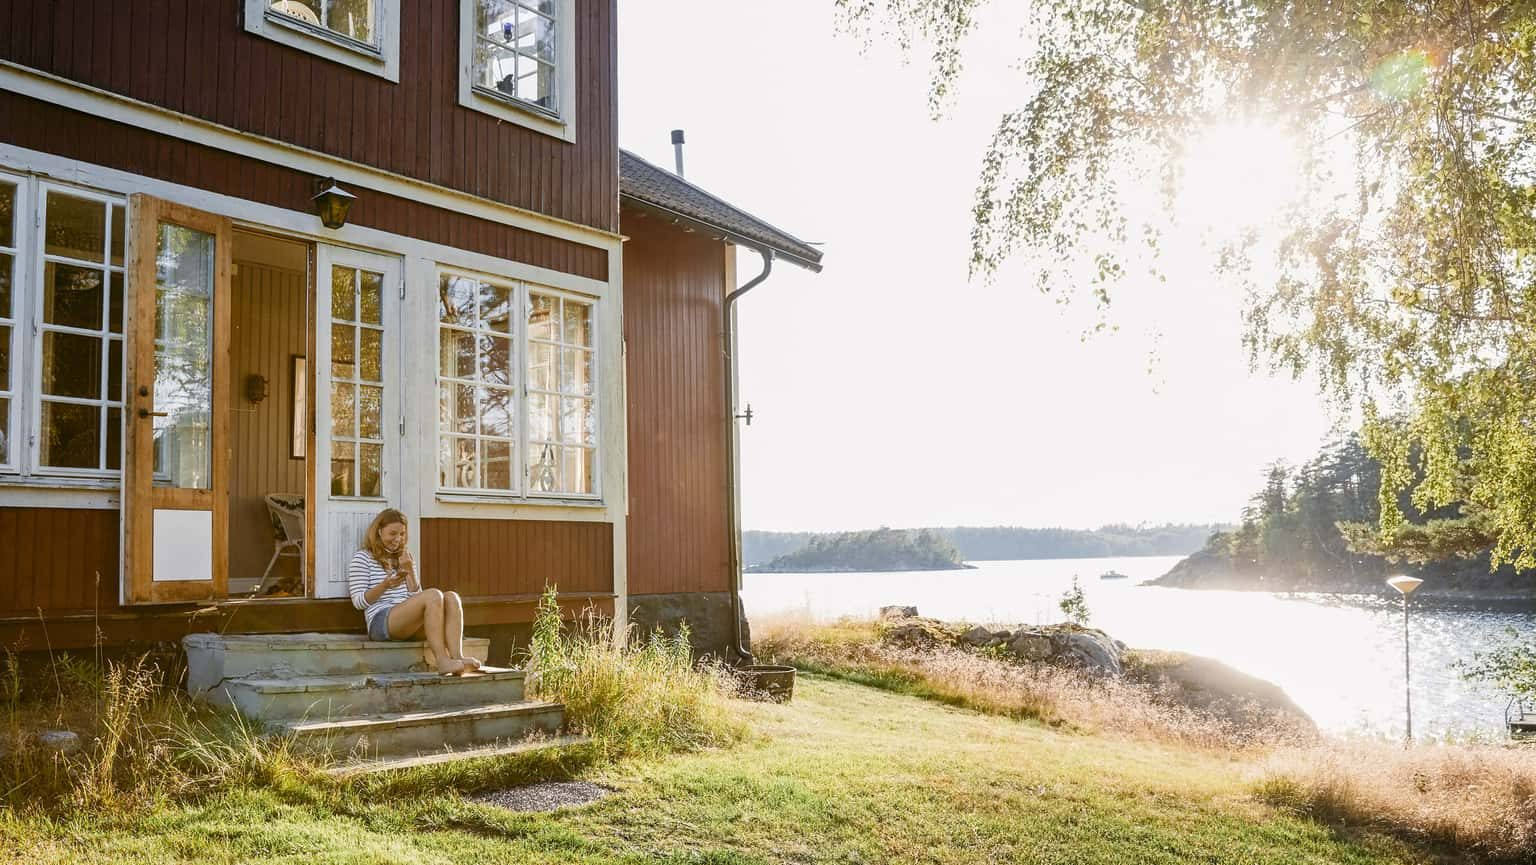 Woman sitting on front steps of a cabin by a lake in the sunshine.